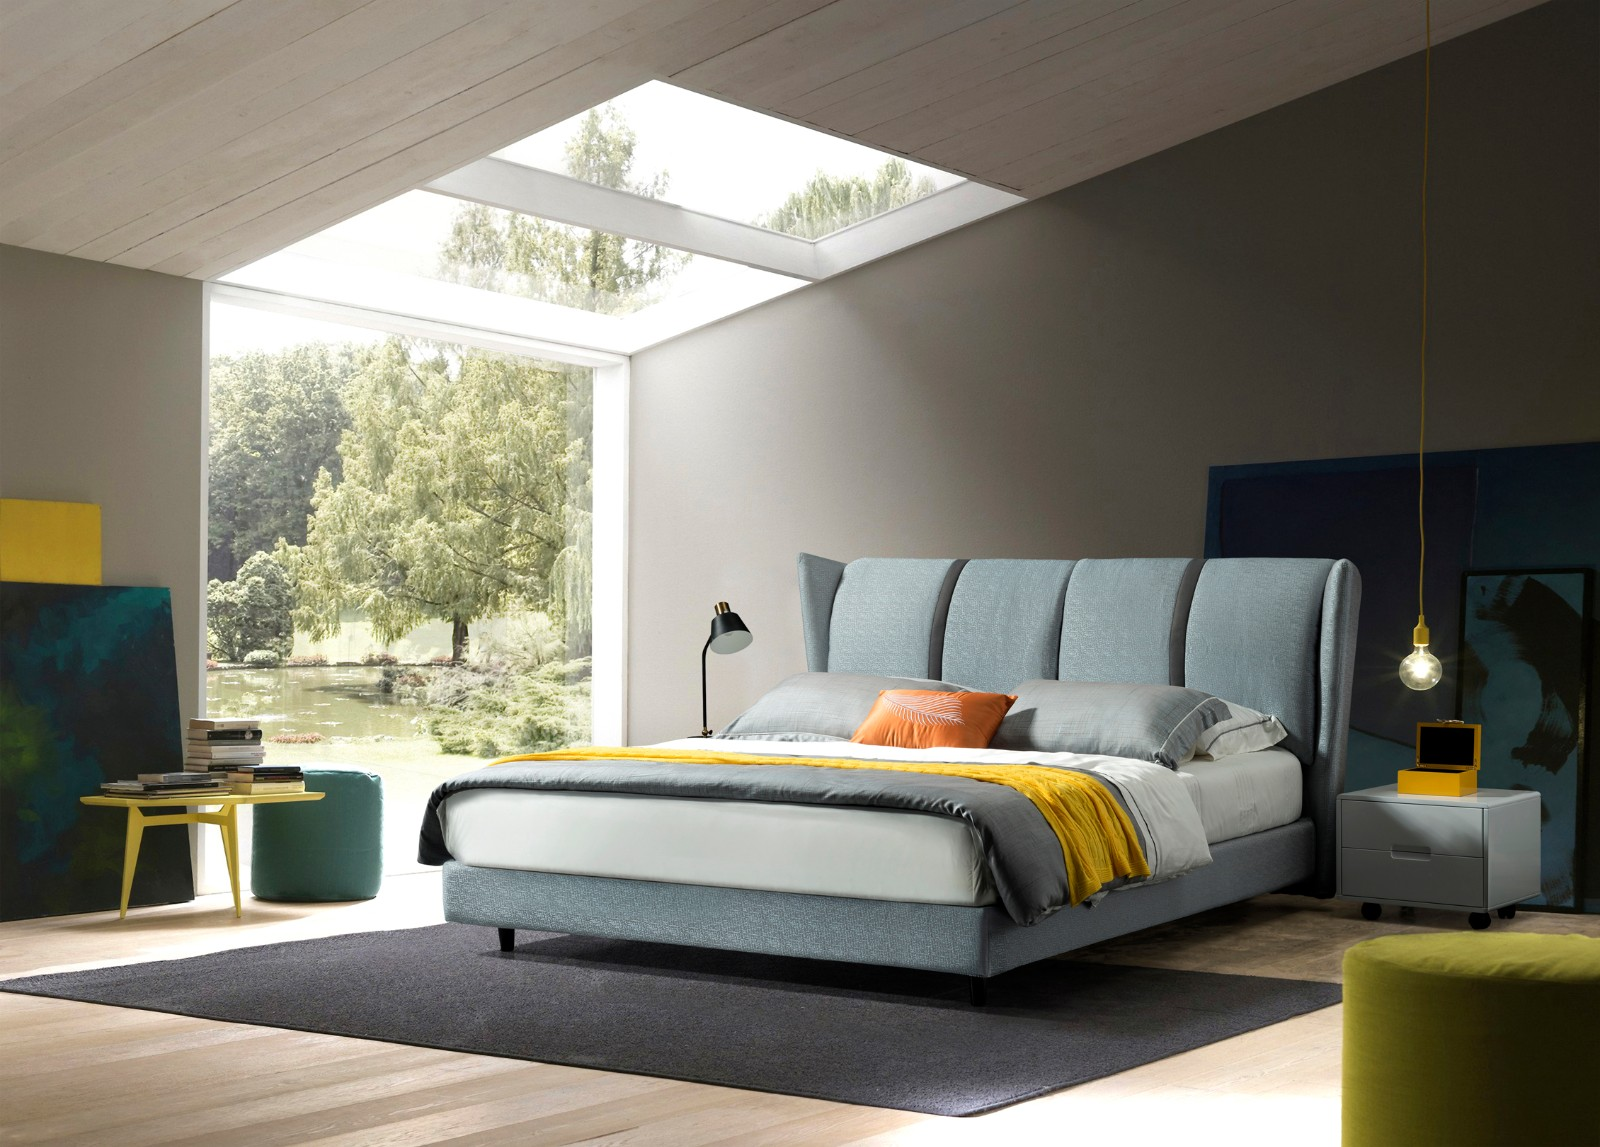 news-GOJO-Giving Your Bedroom Some light and Embellishment Benefits You Both Physically and Mentall-2